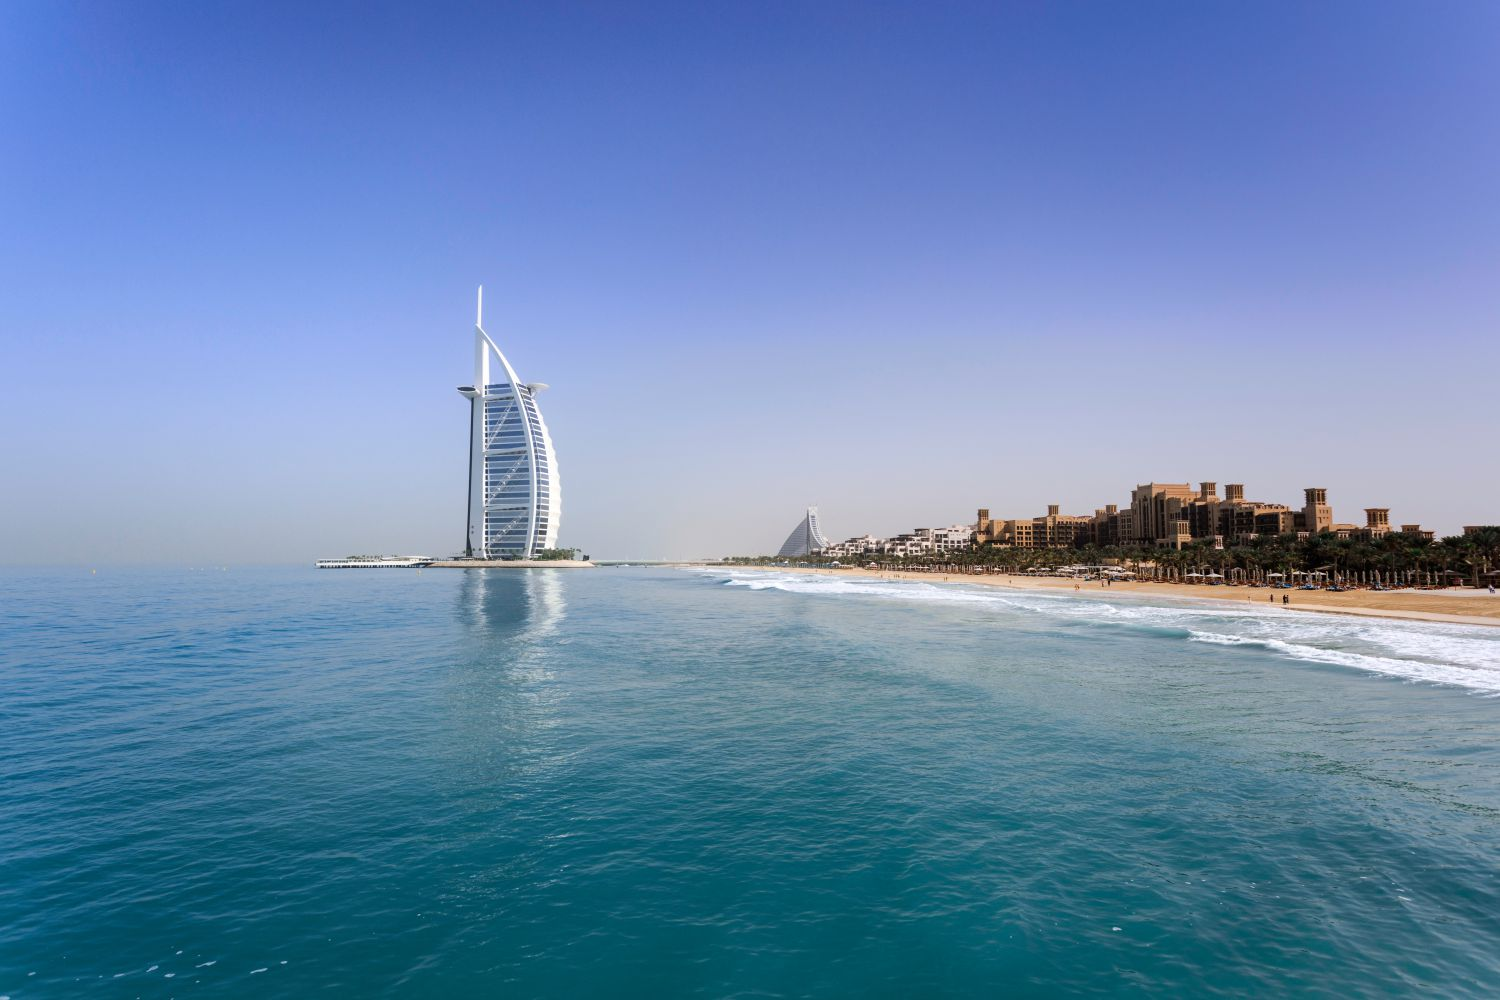 The Burj Al Arab with the ocean in the foreground